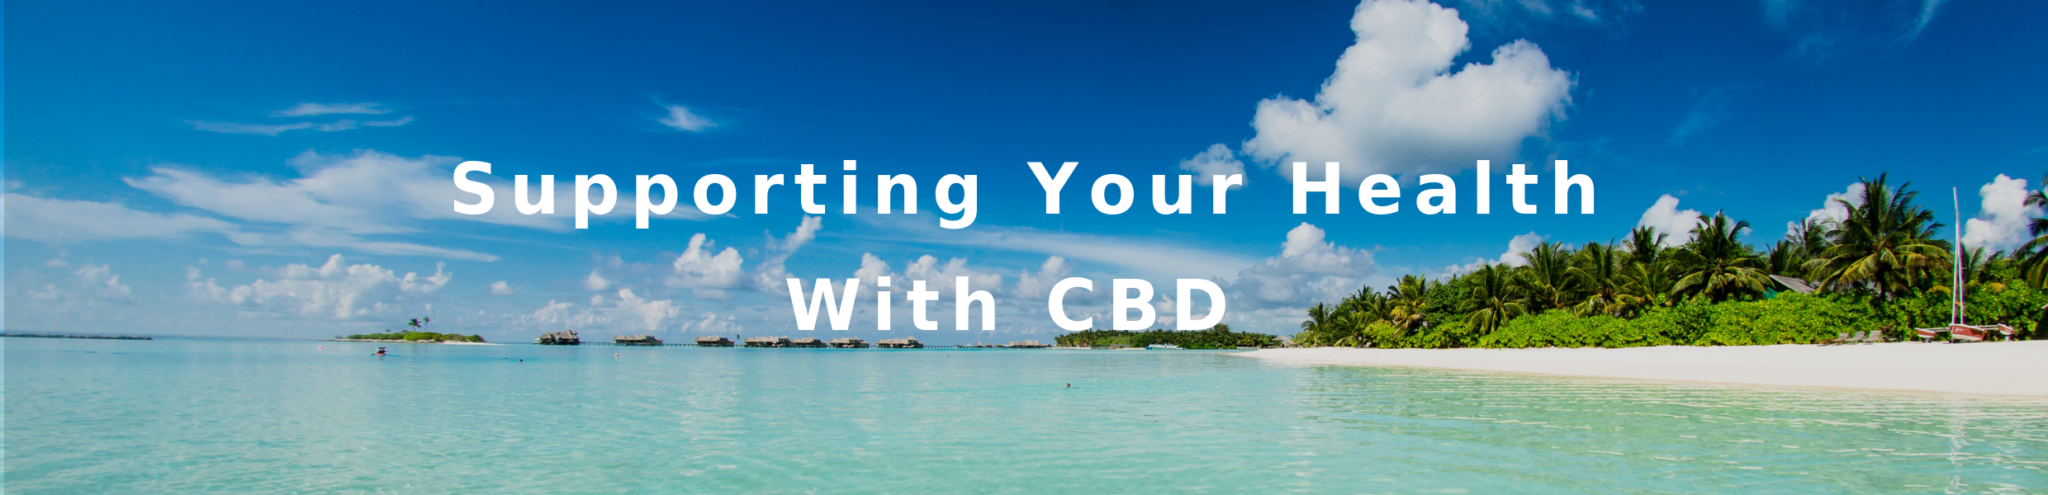 Video Supporting Your Health with CBD